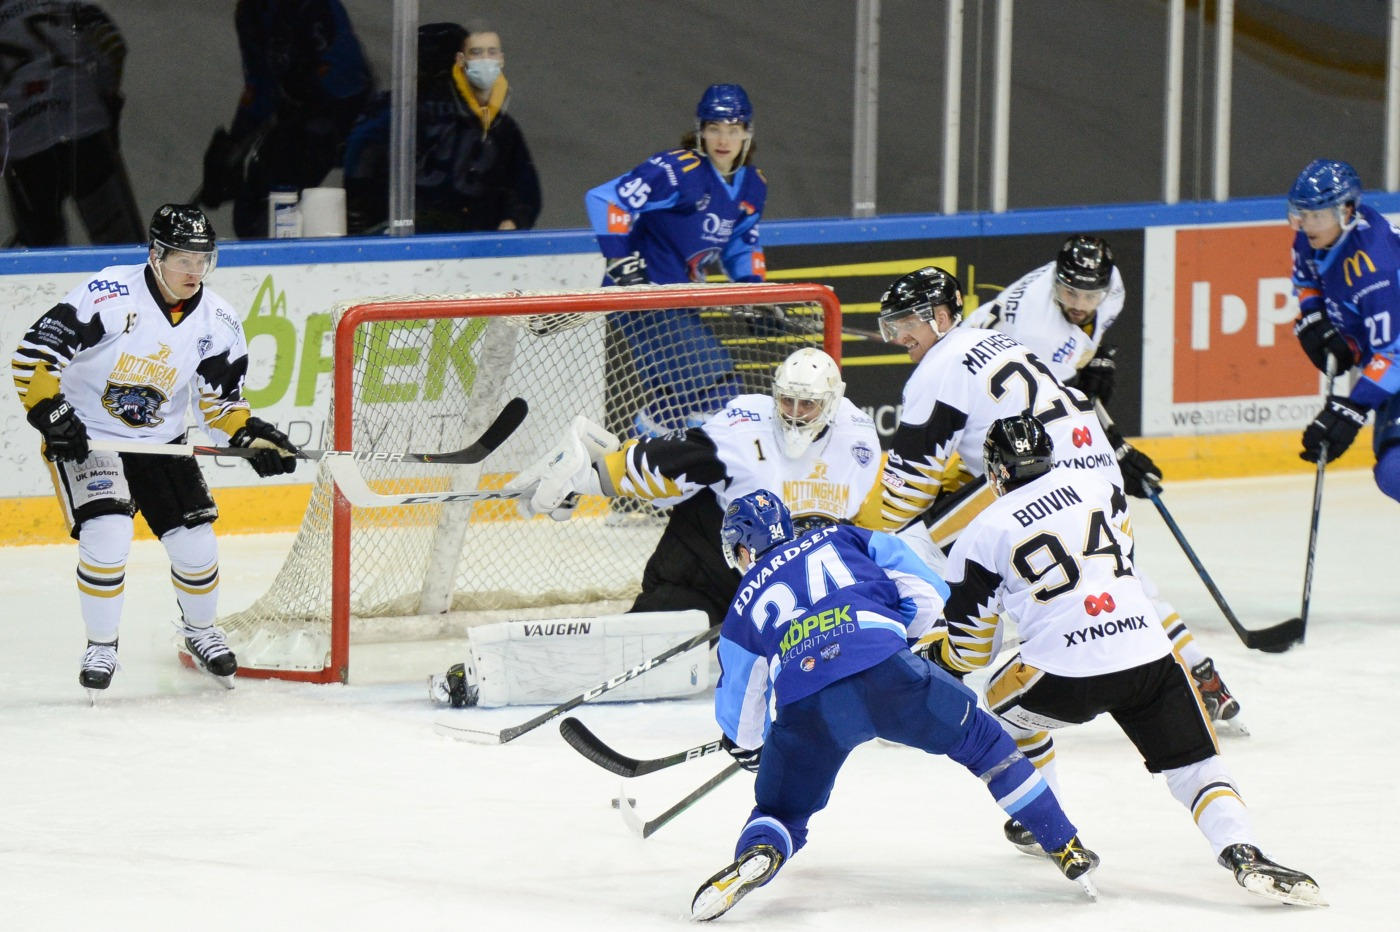 Image: Dean Woolley / Panthers Images